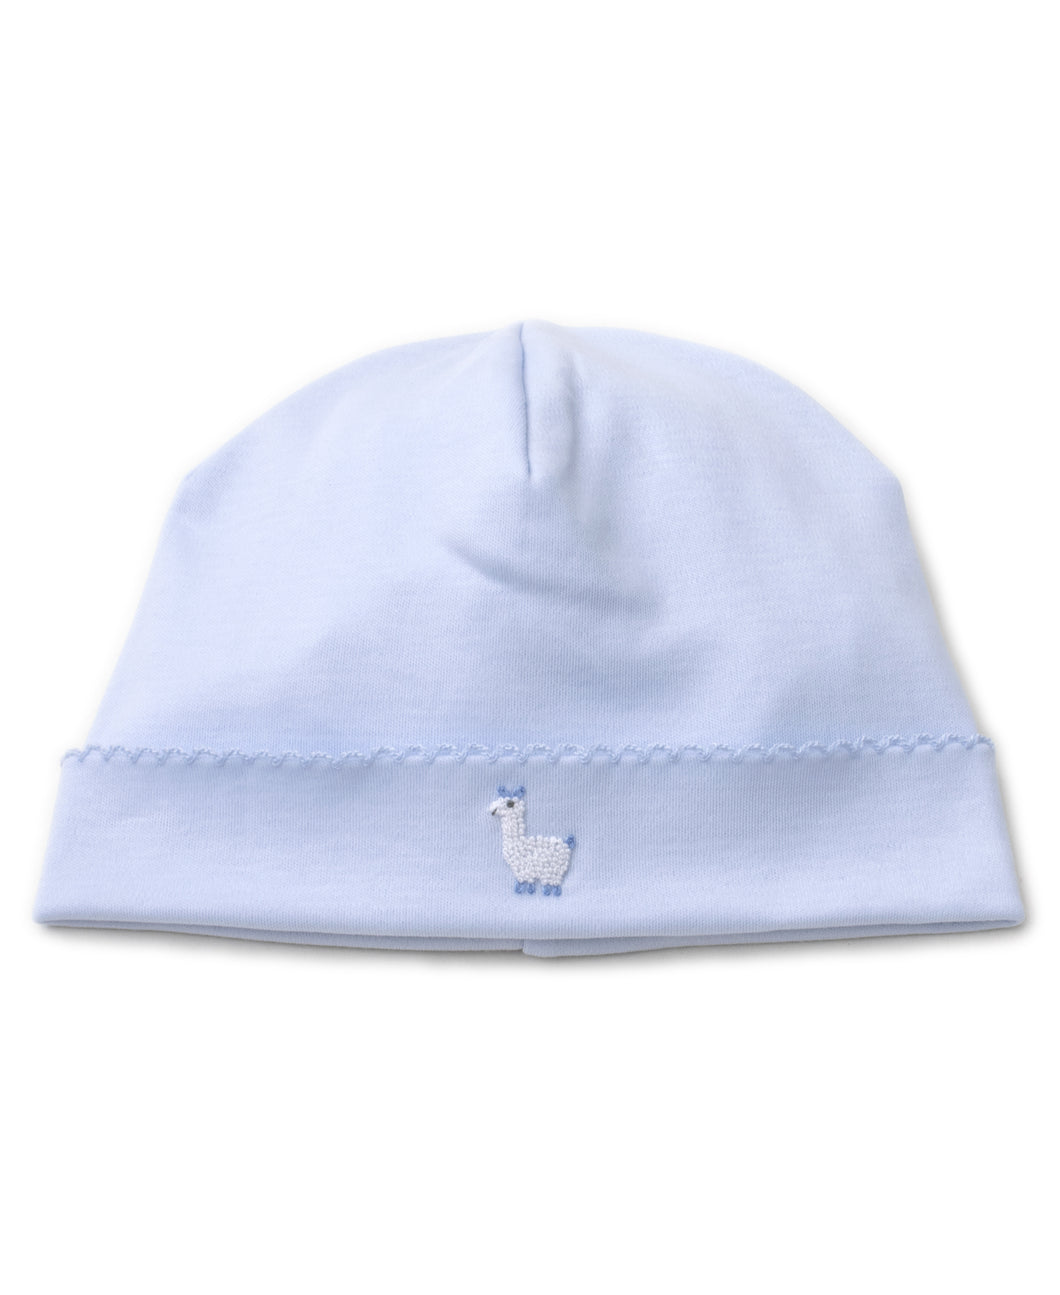 Premier Llama Family Hat with Hand Emb - Light Blue